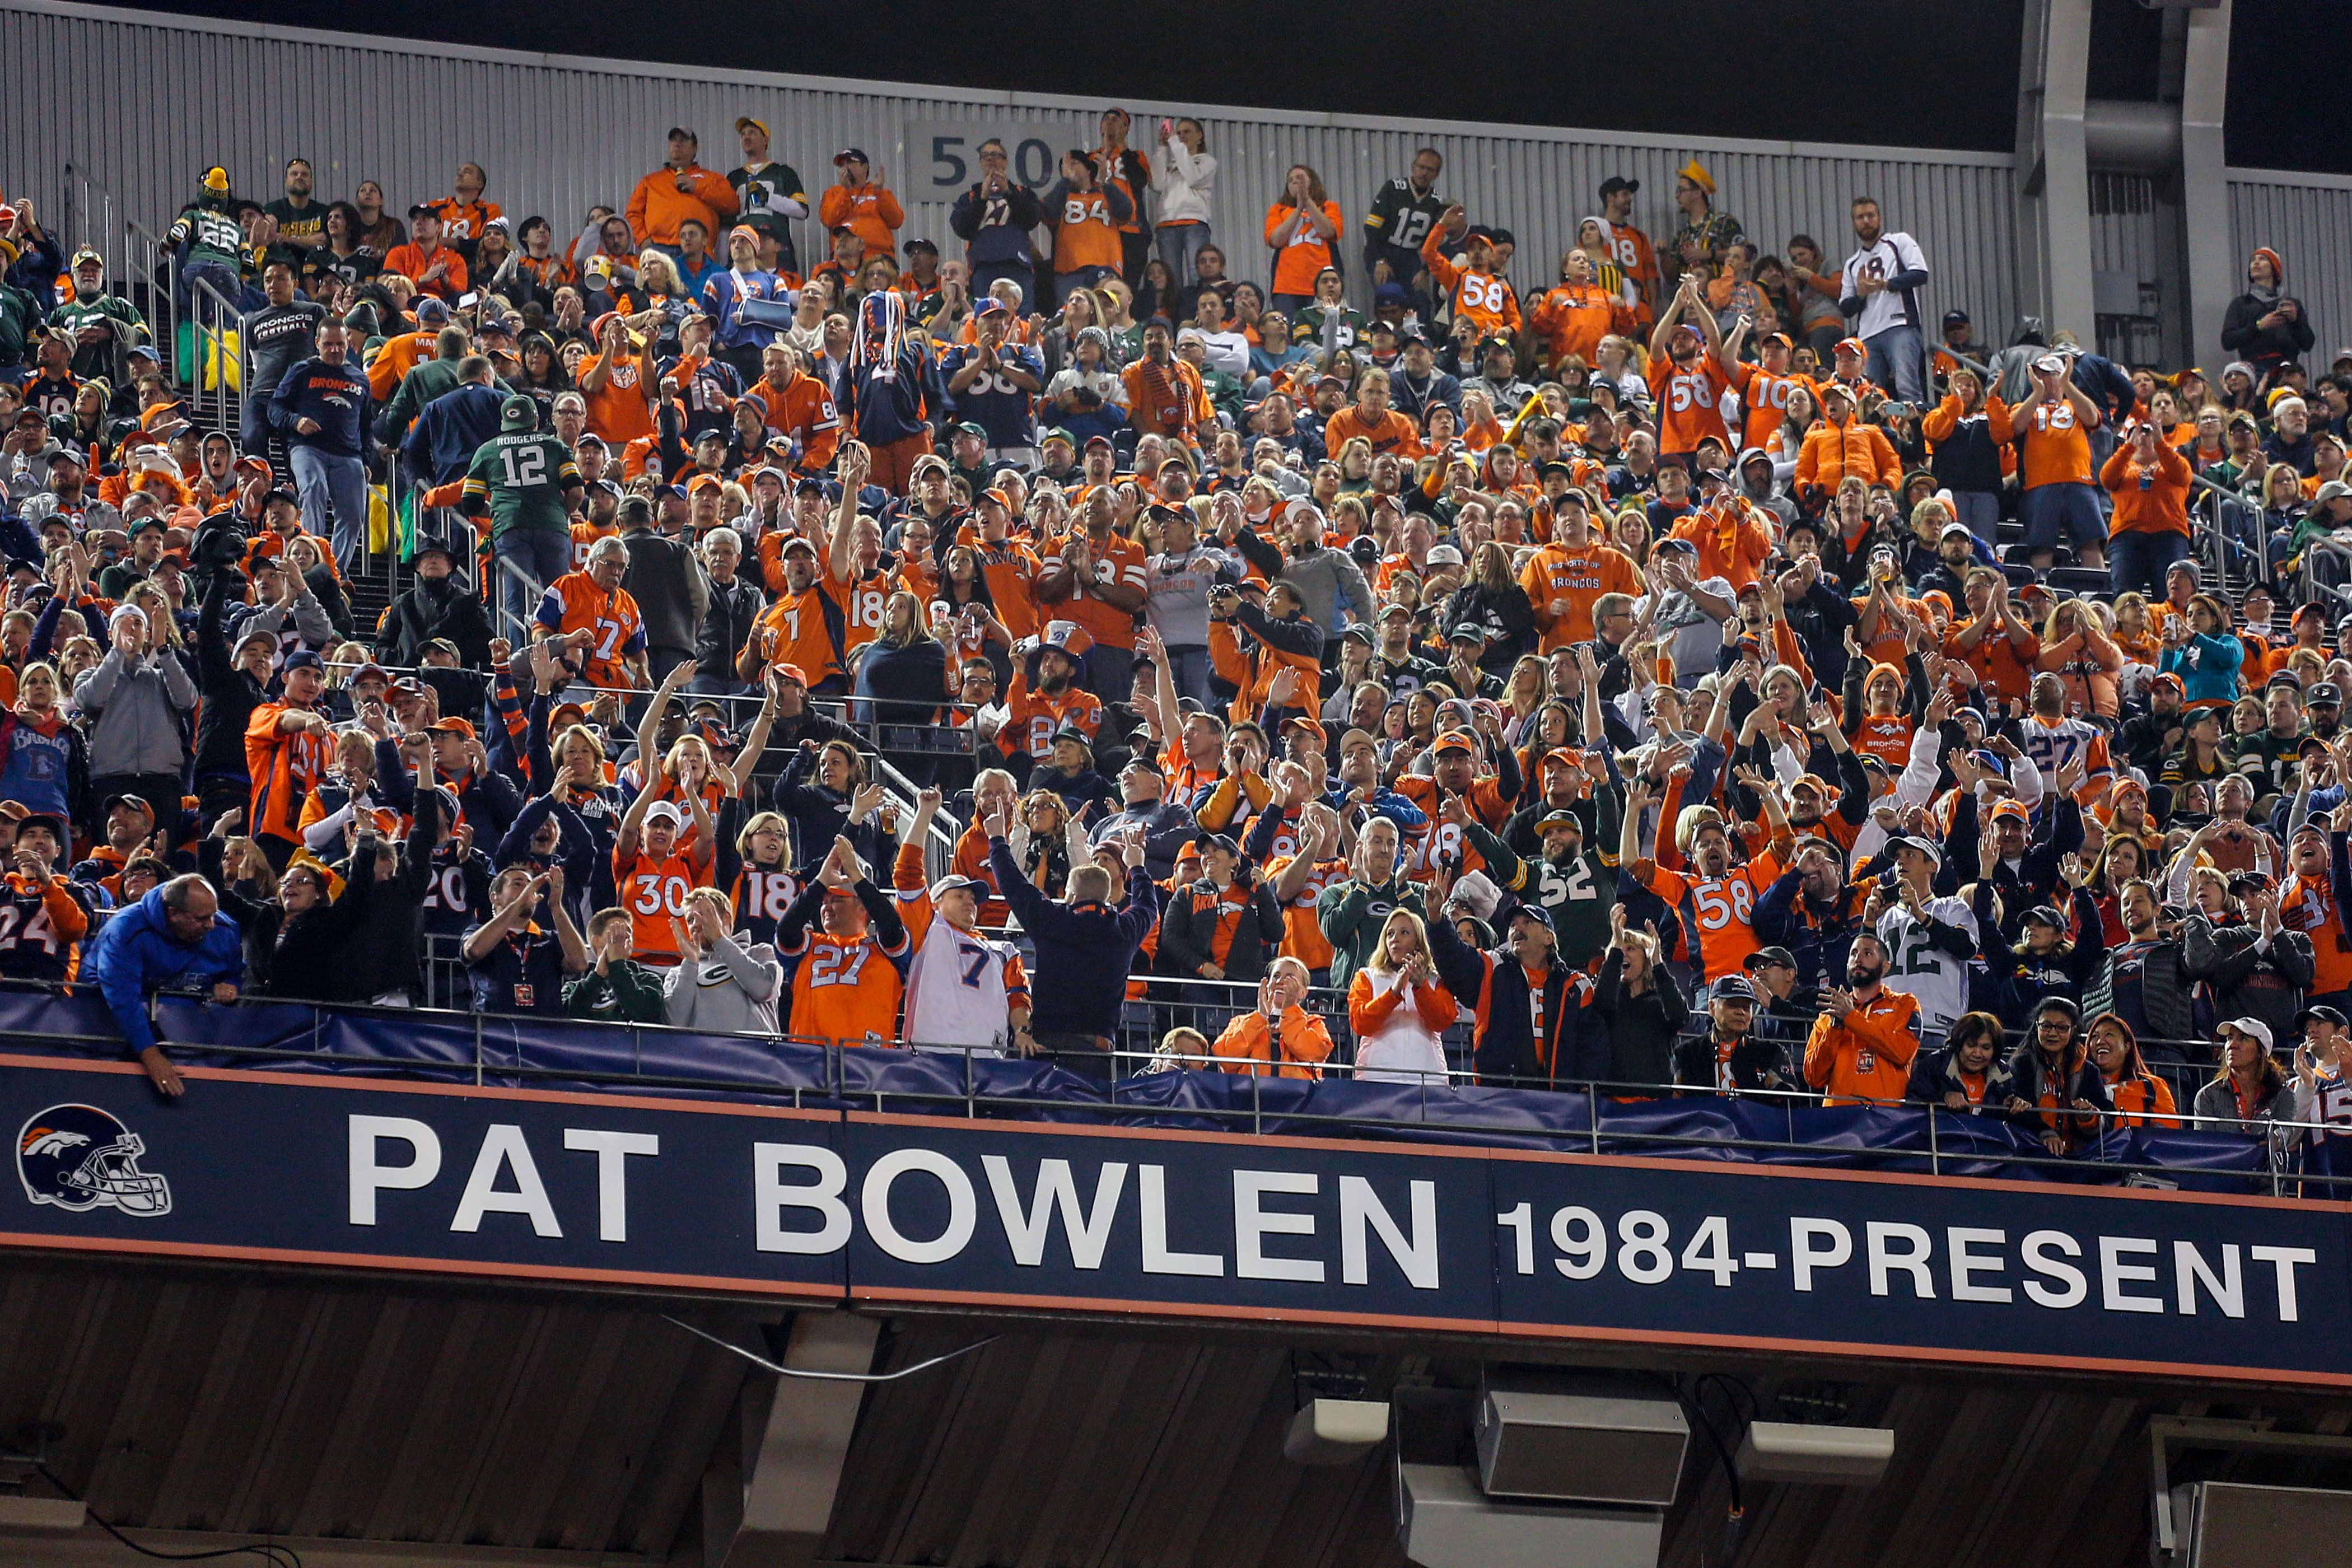 <p>The name of Broncos owner Pat Bowlen is unveiled during his Broncos' Ring of Honor induction at halftime of an NFL football game against the Green Bay Packers, Sunday, Nov. 1, 2015, in Denver.</p>